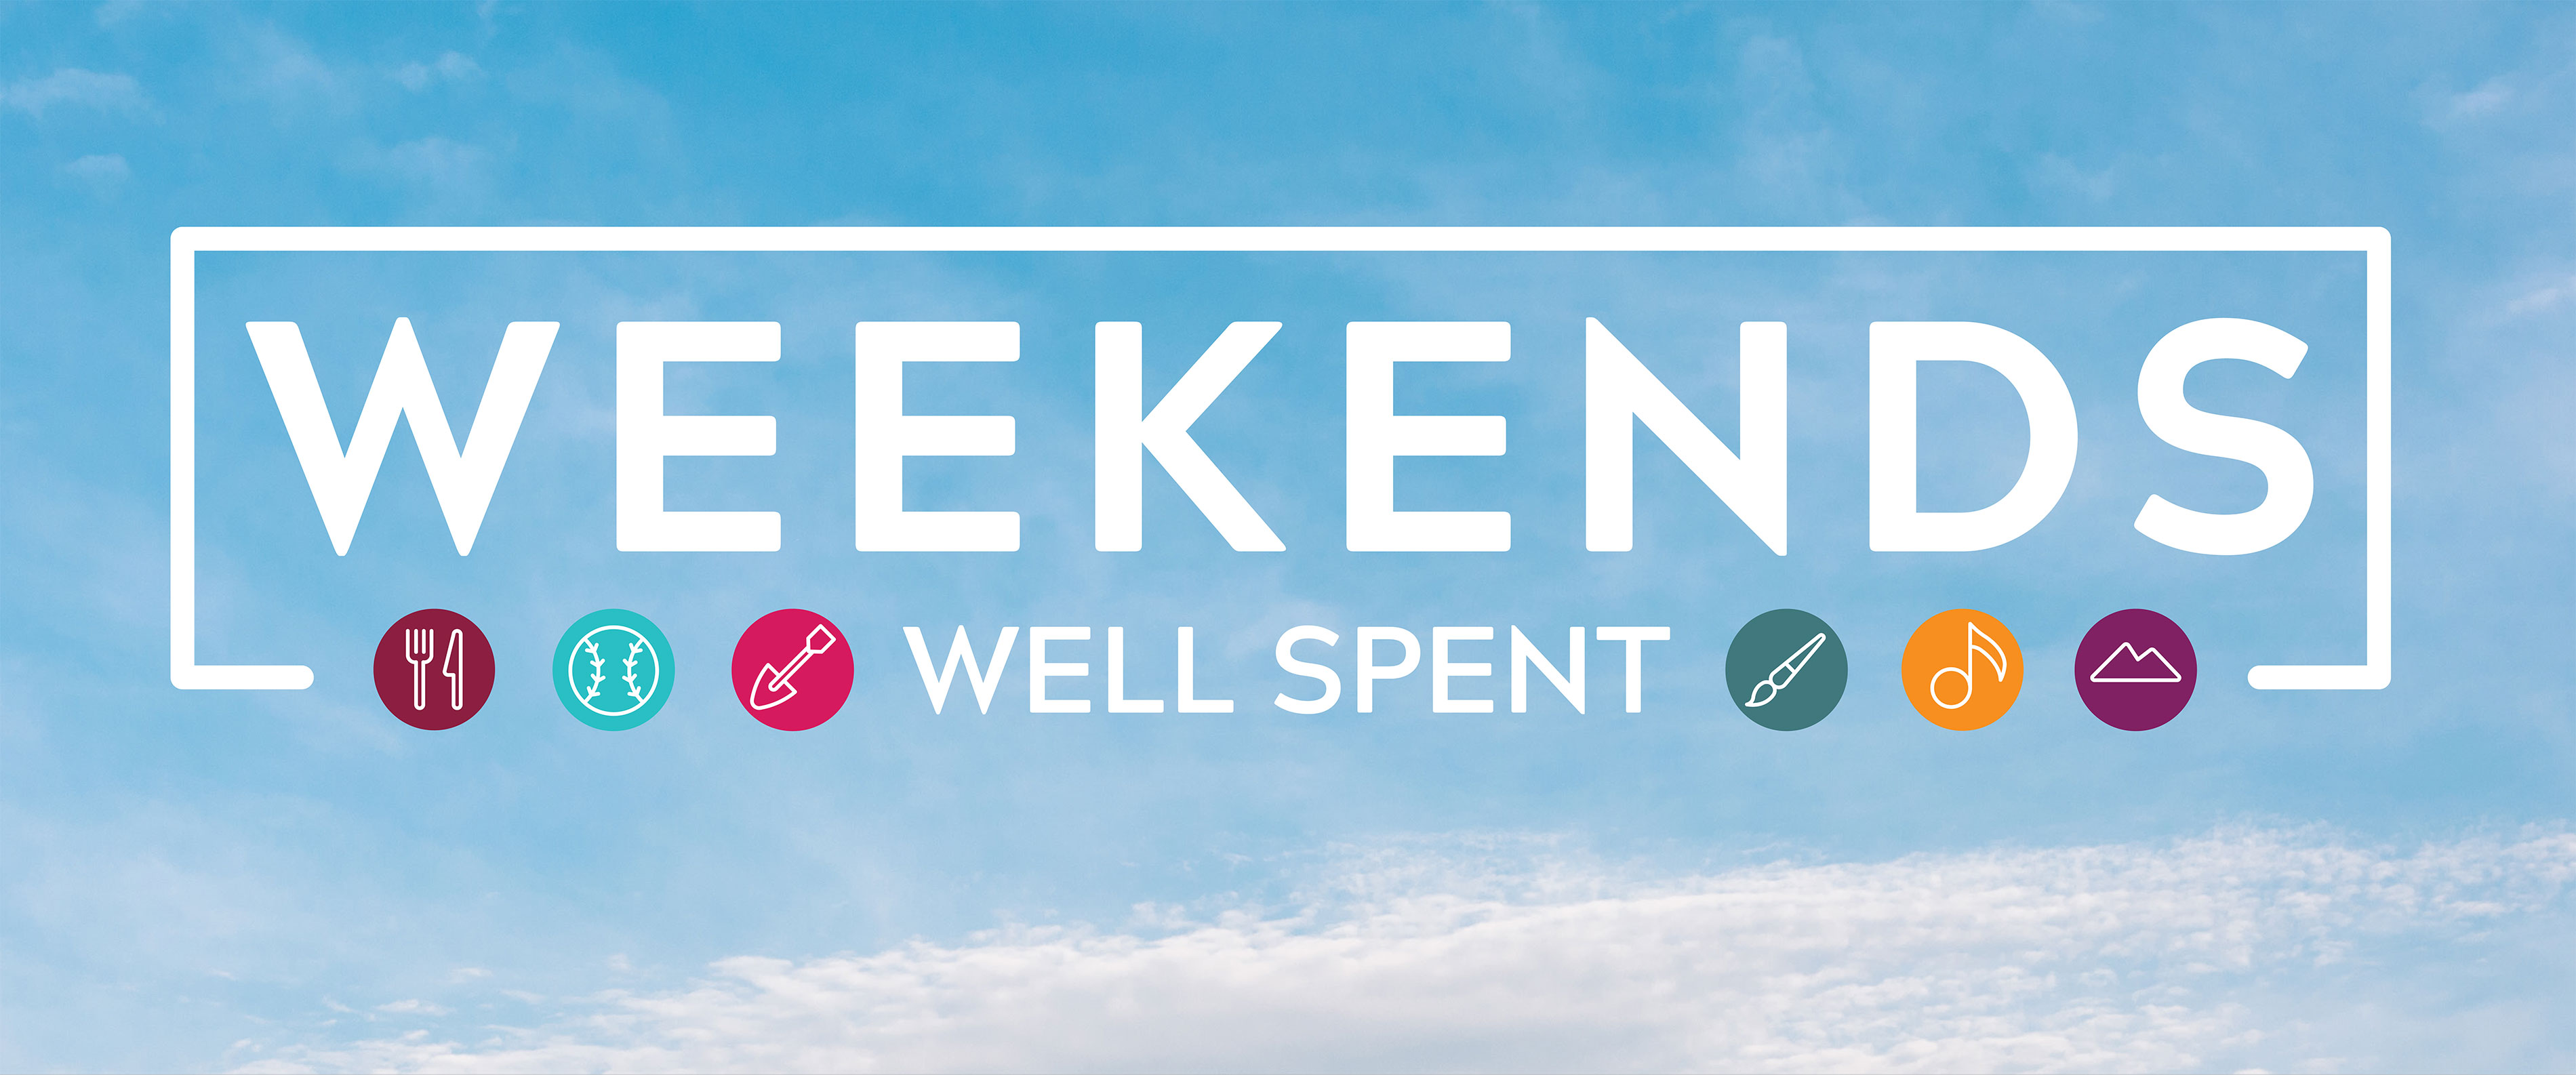 weekends well spent logo